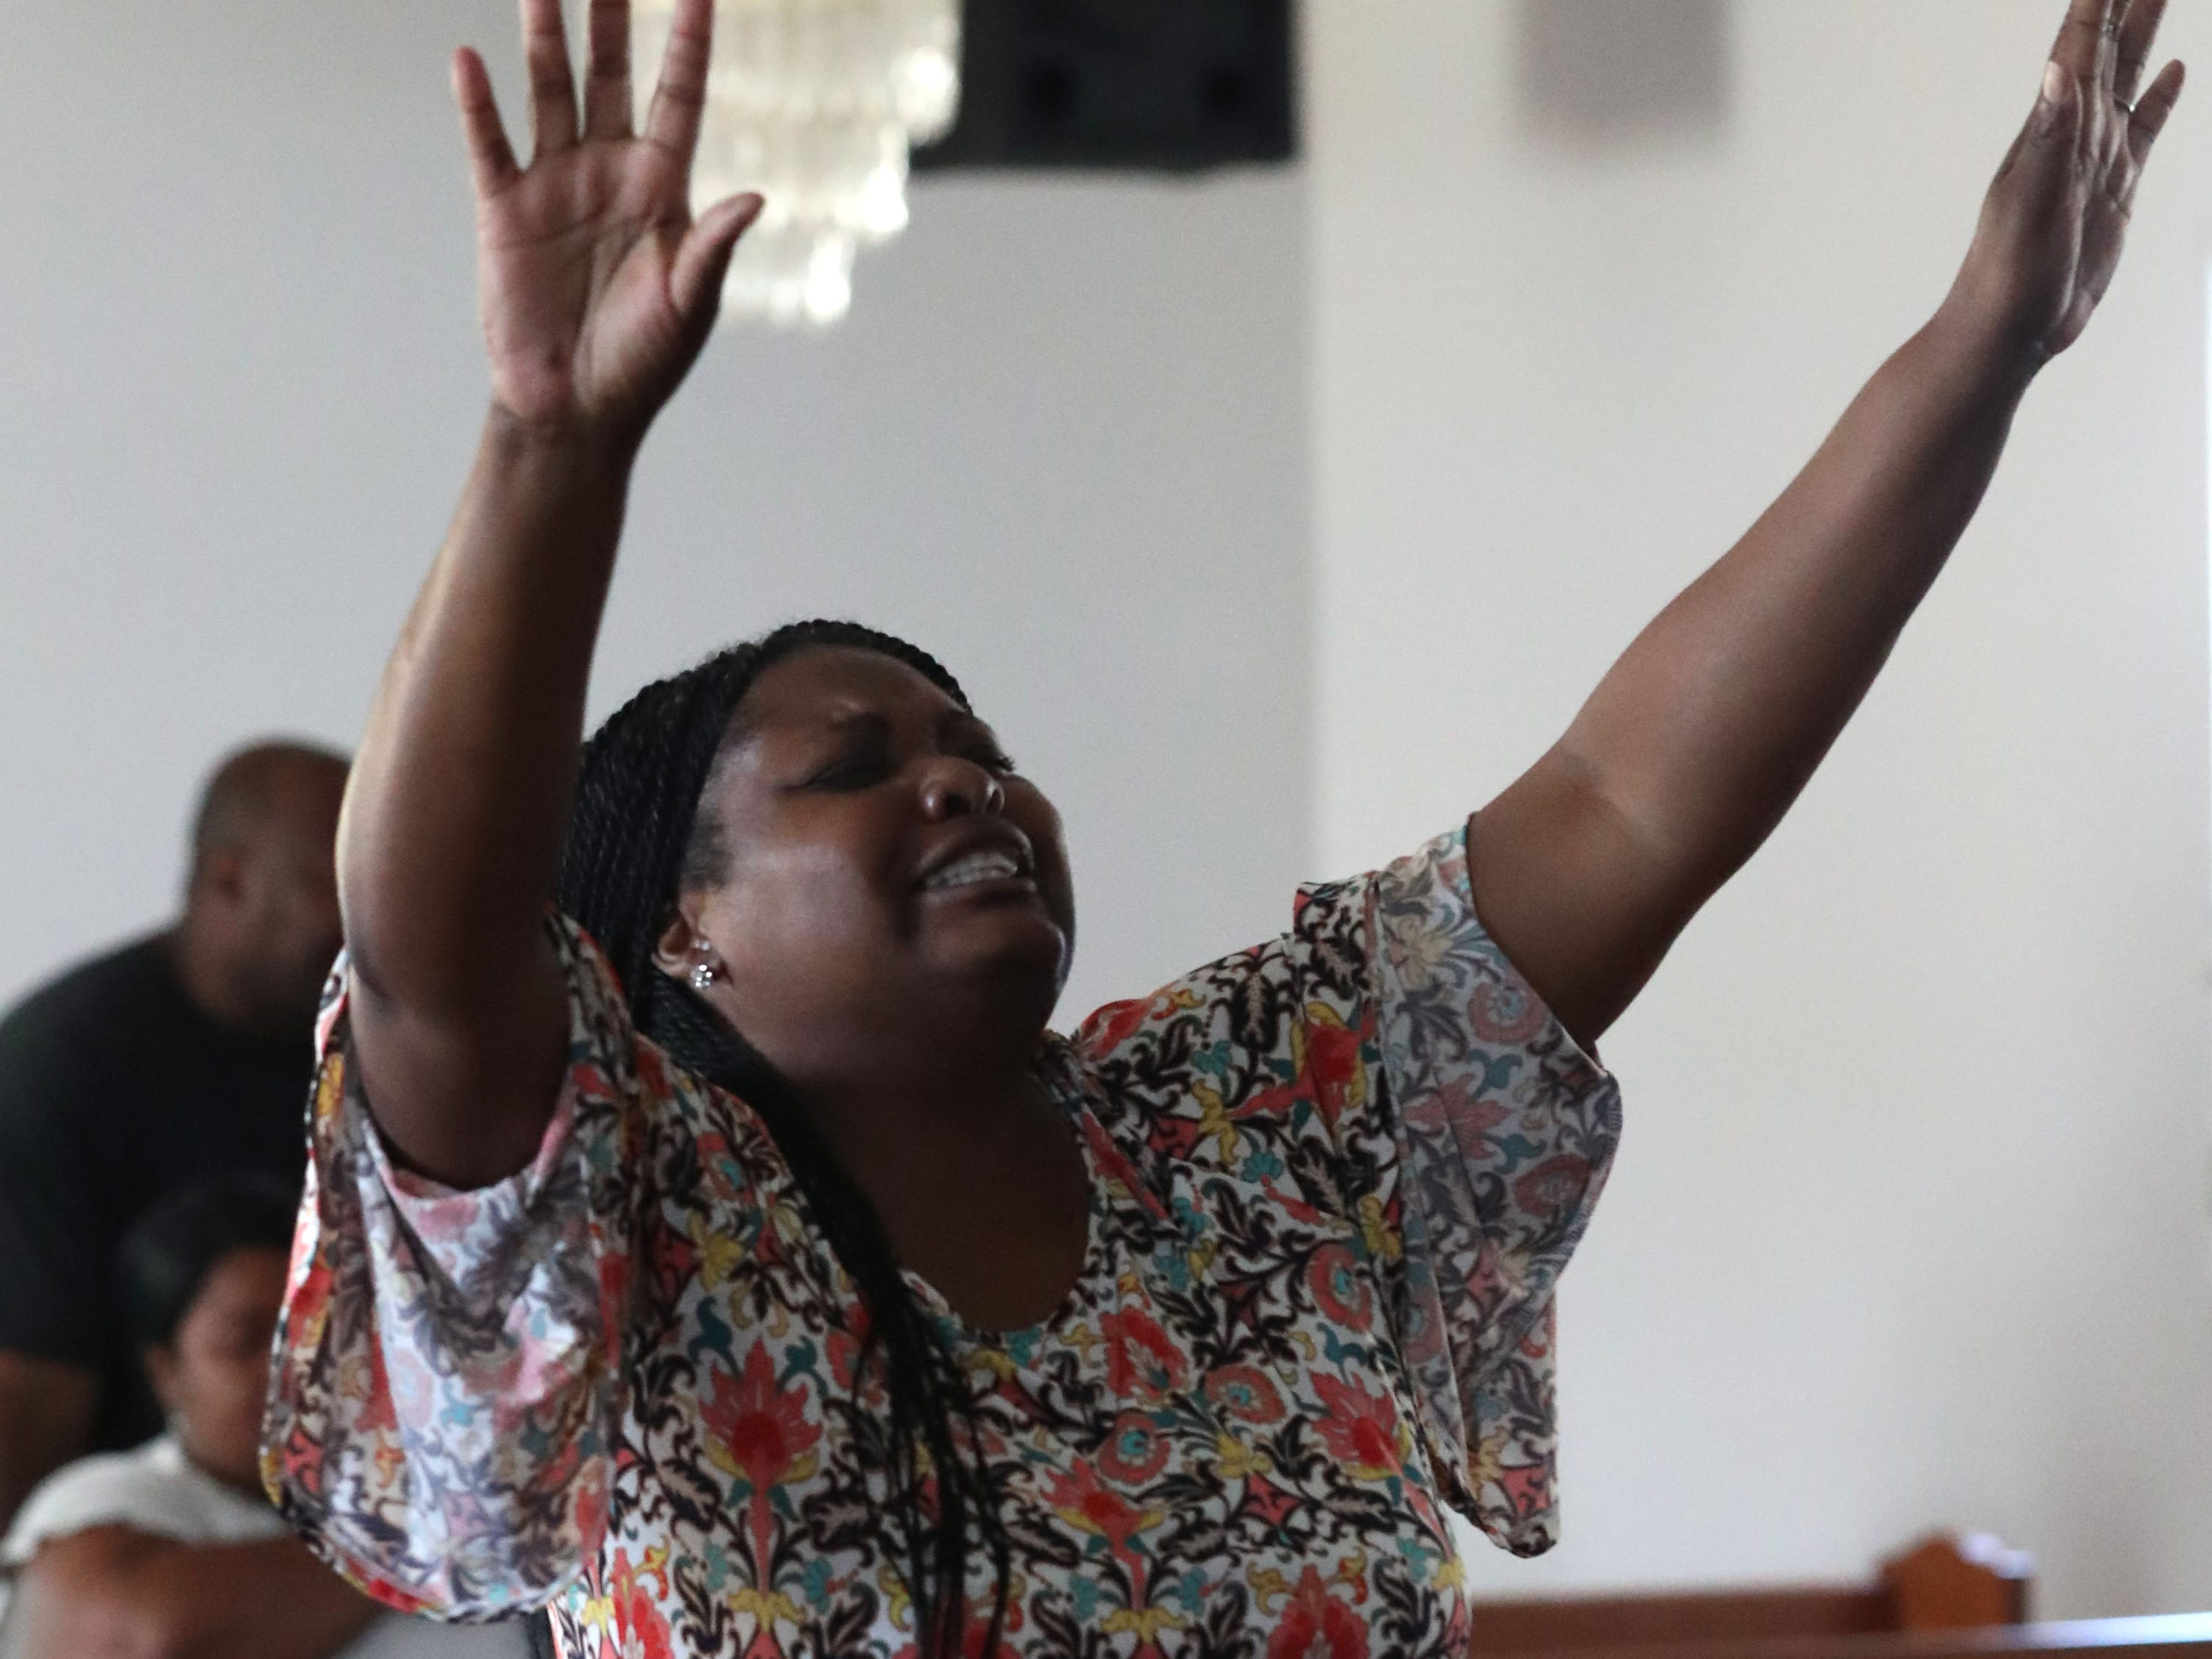 Delisha Green, member of the Dream, Vision, and Destiny (DVD) Ministry in Gretna, Fla. sings her praises at Sunday service on Oct. 14, 2018, after Hurricane Michael hits the Florida panhandle.